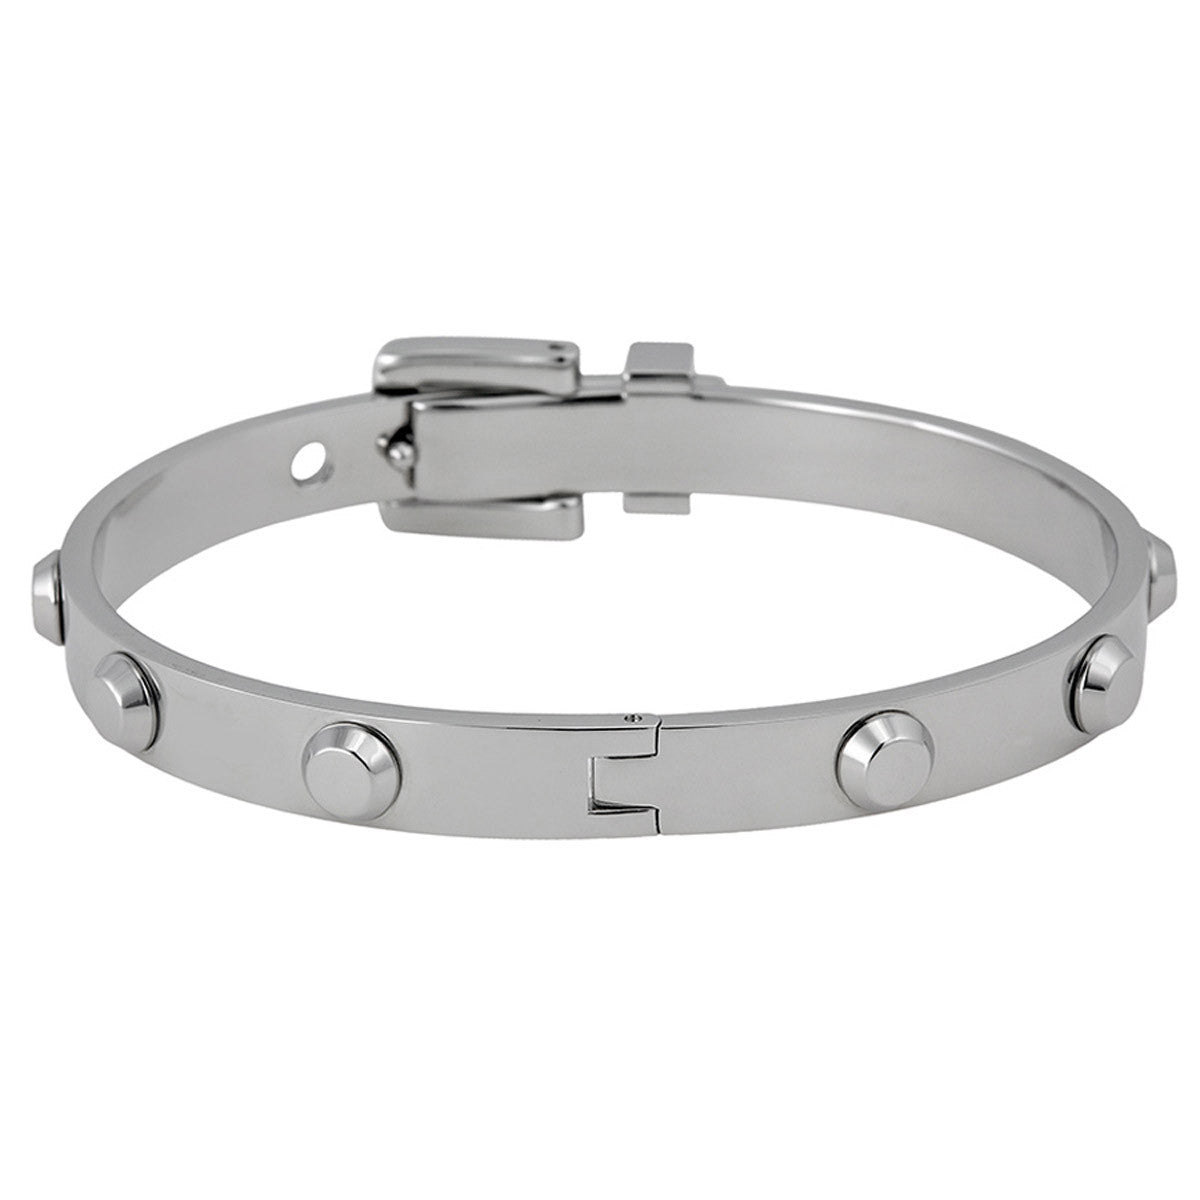 Michael Kors MKJ1820040 Women's Astor Silver Tone Steel Buckle Bangle Bracelet